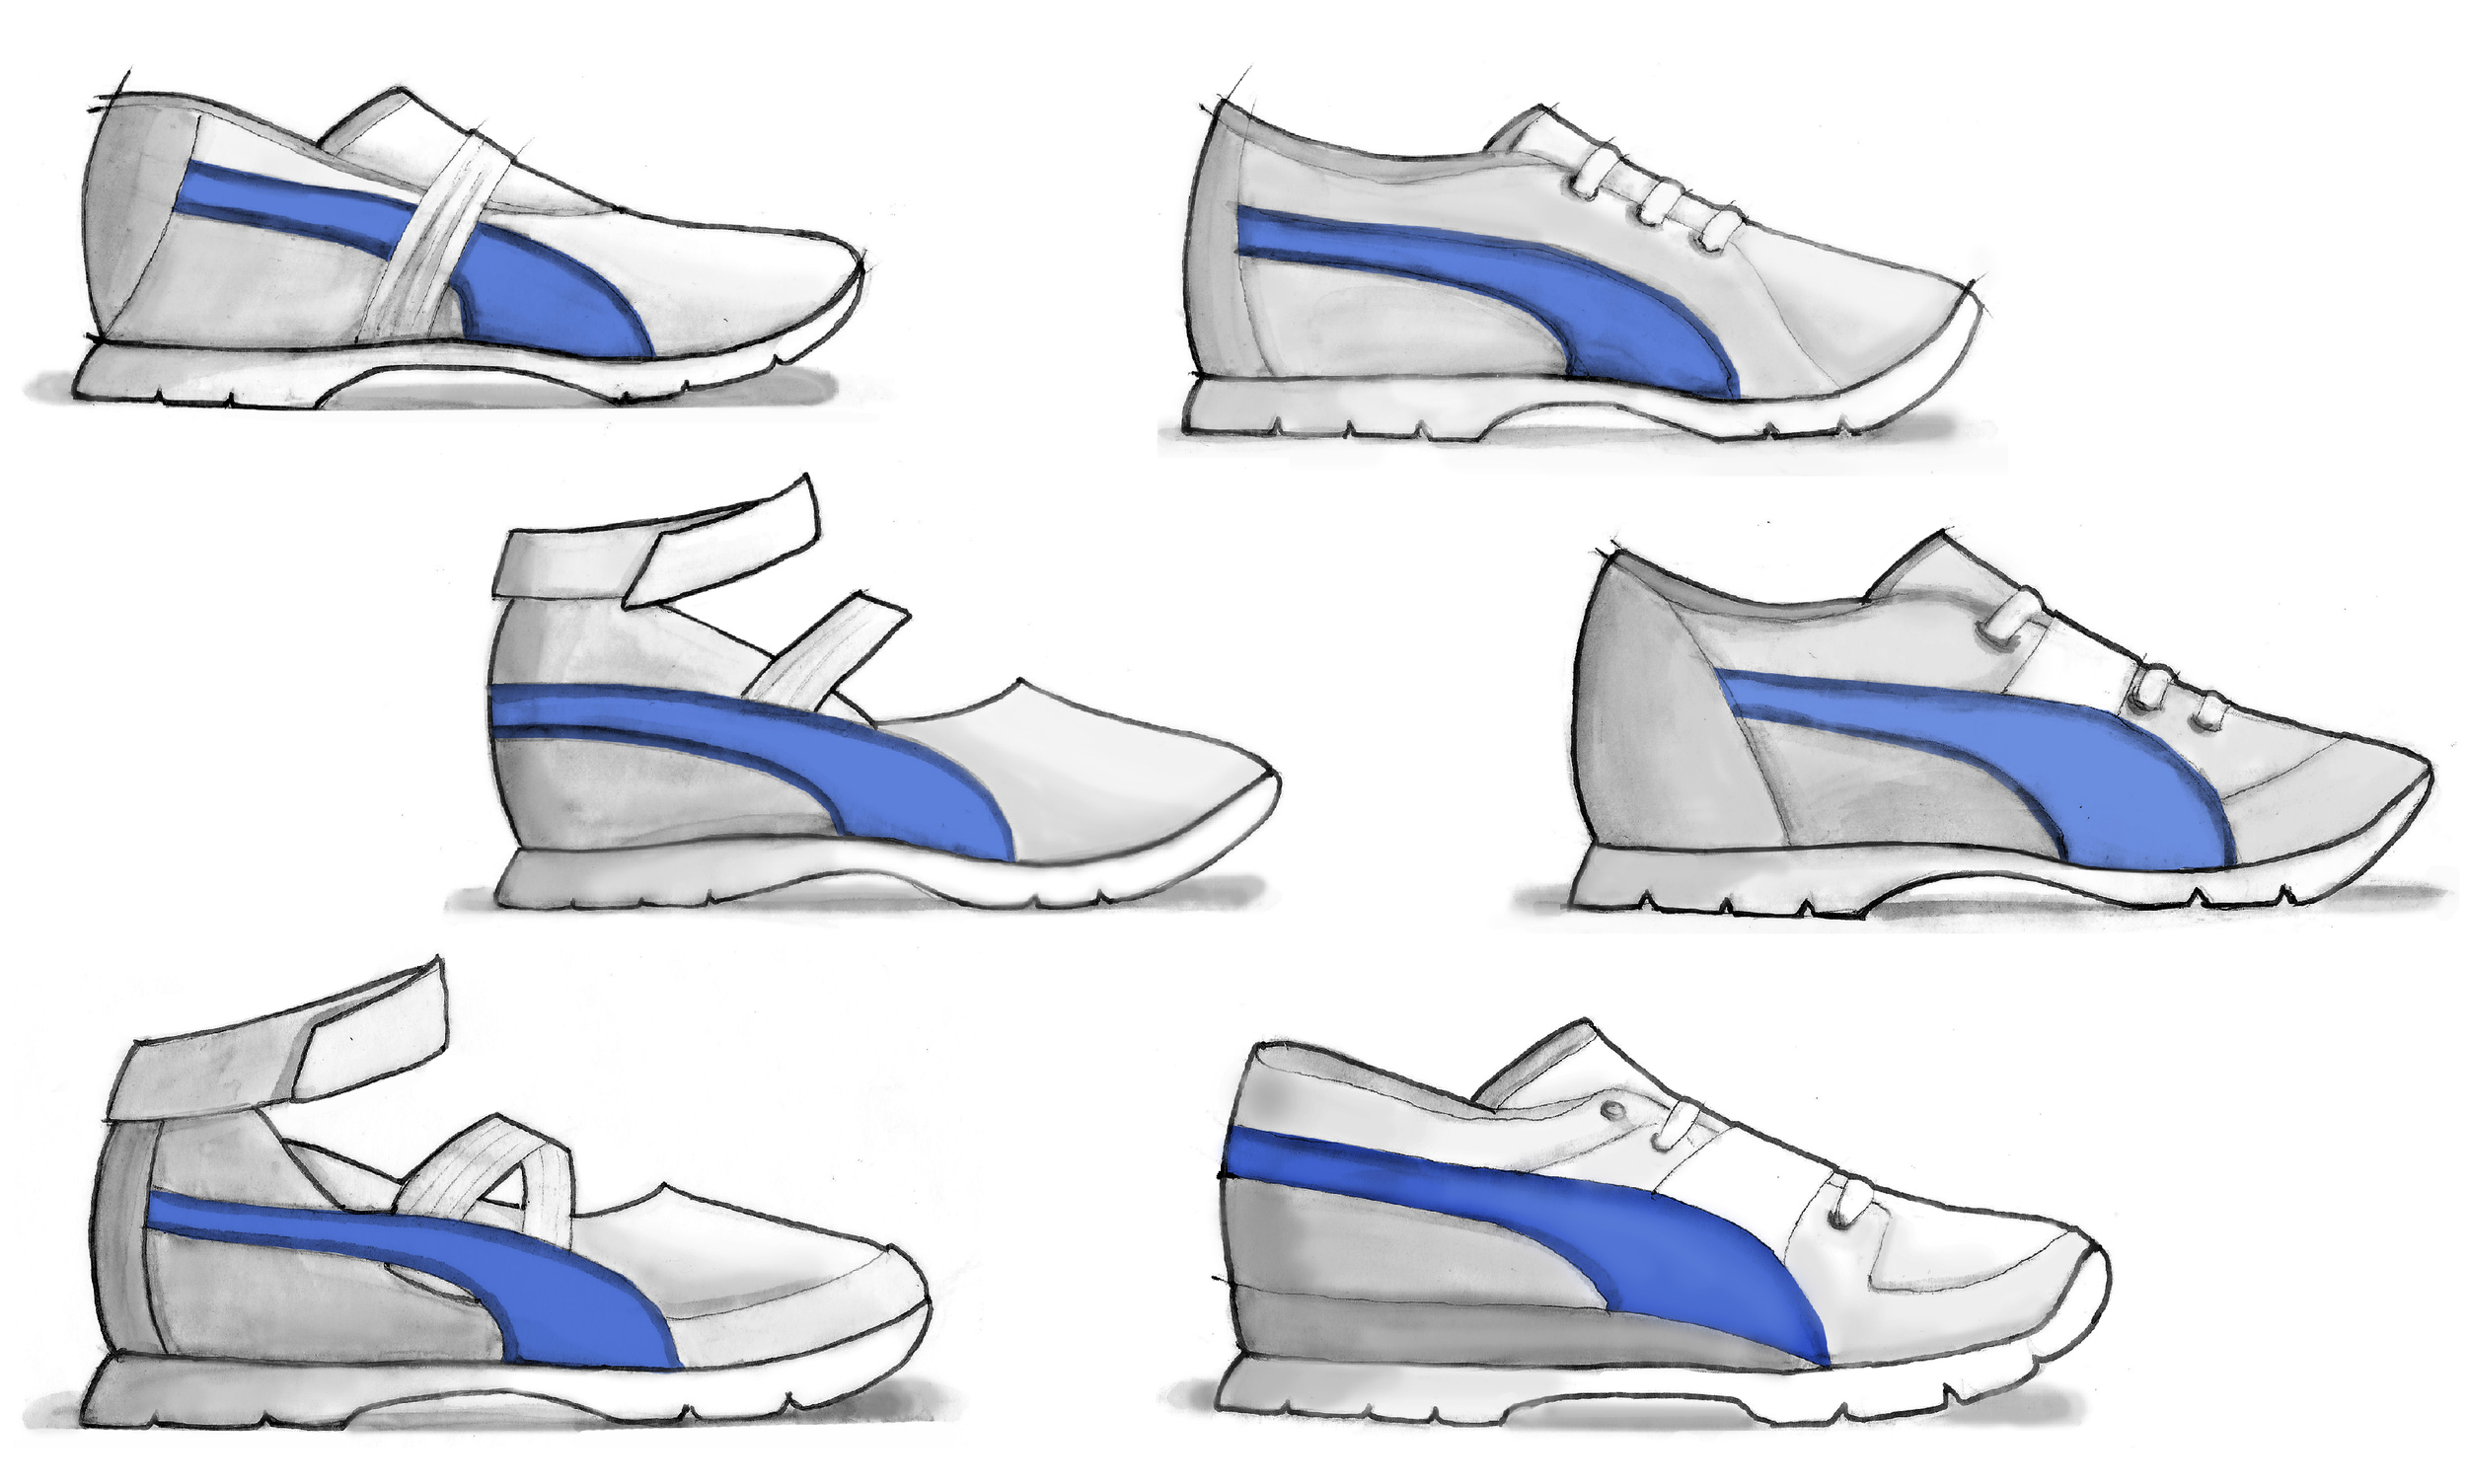 a water sandal for girls (left column) and a versatile sneaker (right column)